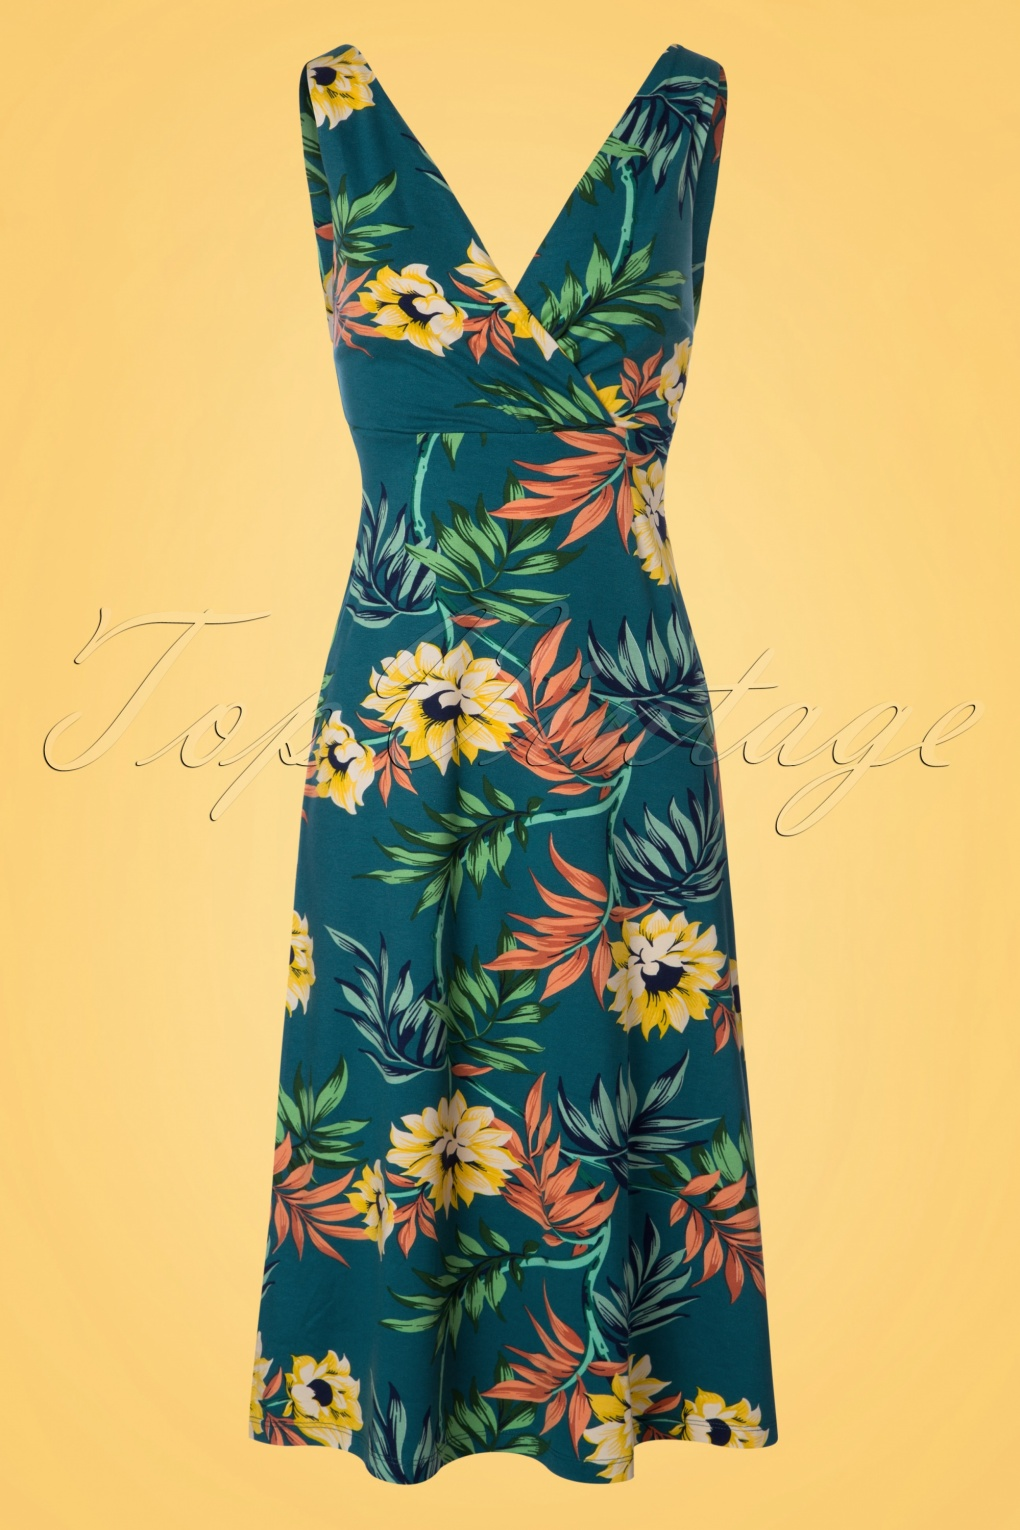 Plus Size Vintage Dresses, Plus Size Retro Dresses 70s Ginger Marisol Midi Dress in Parade Blue £84.10 AT vintagedancer.com